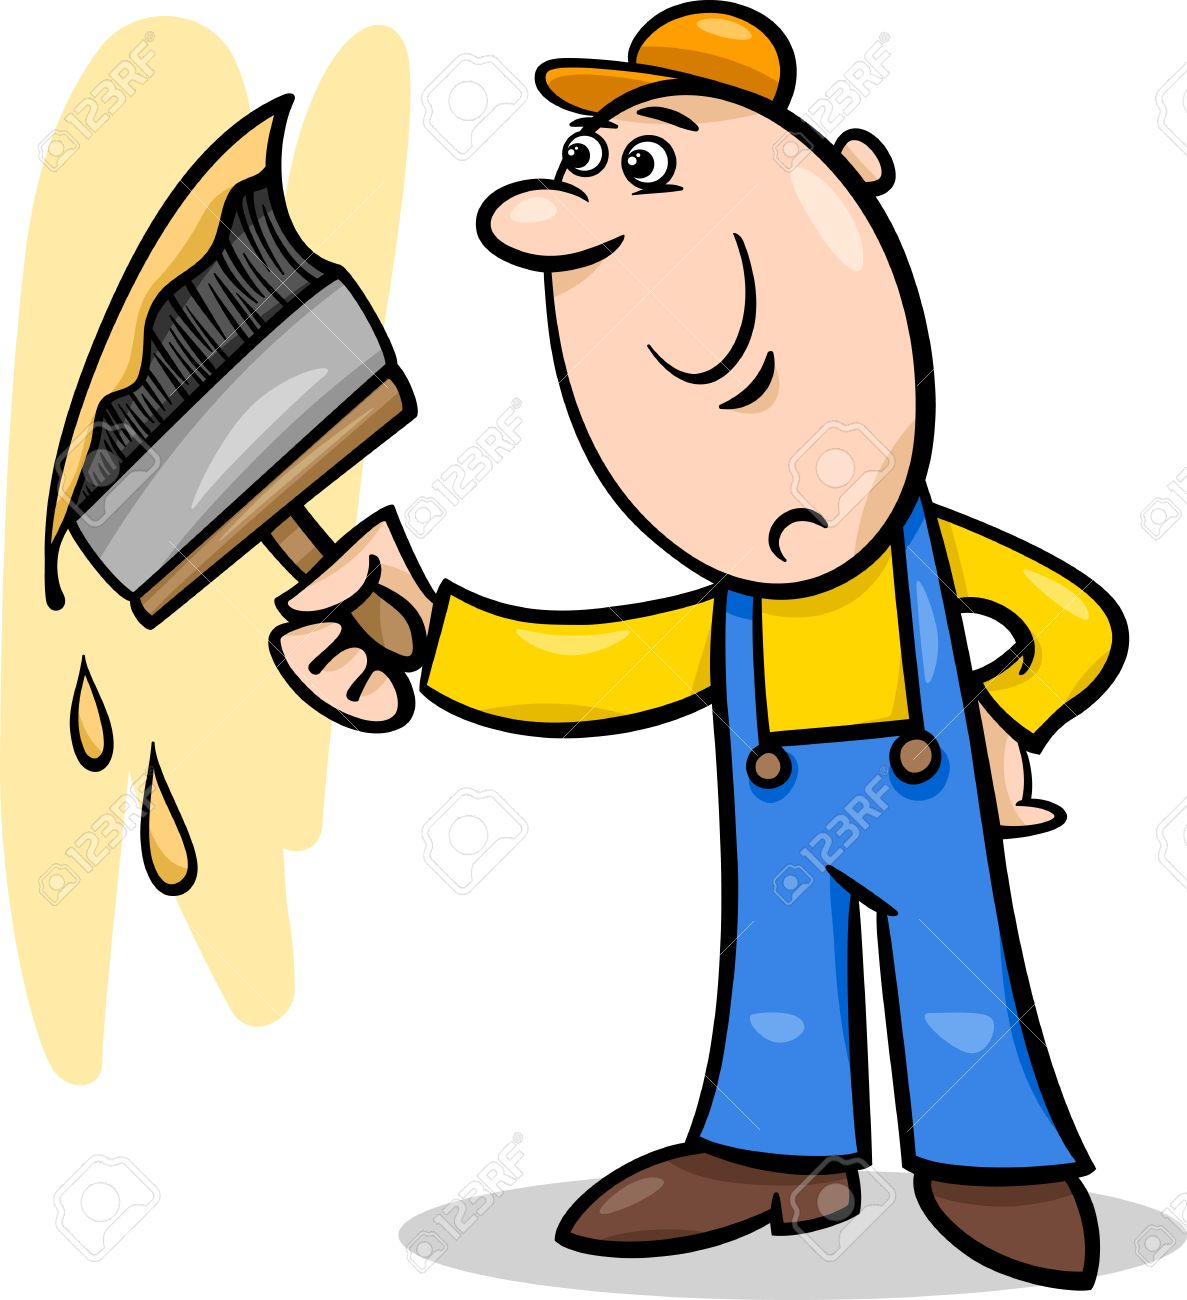 Cartoon Illustration of Worker with Big Brush painting a Wall...